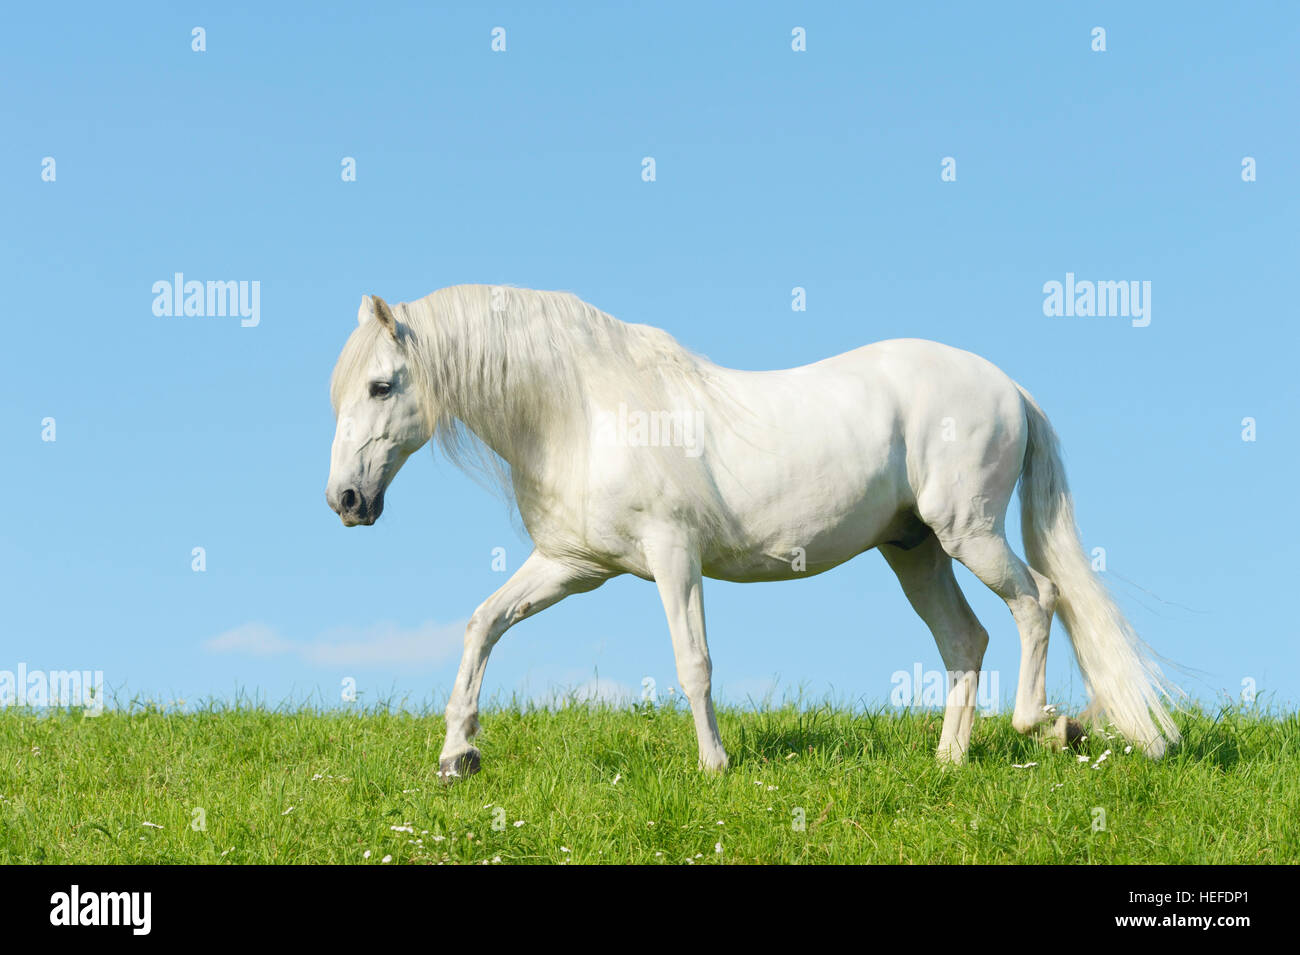 Andalusian horse in the field - Stock Image